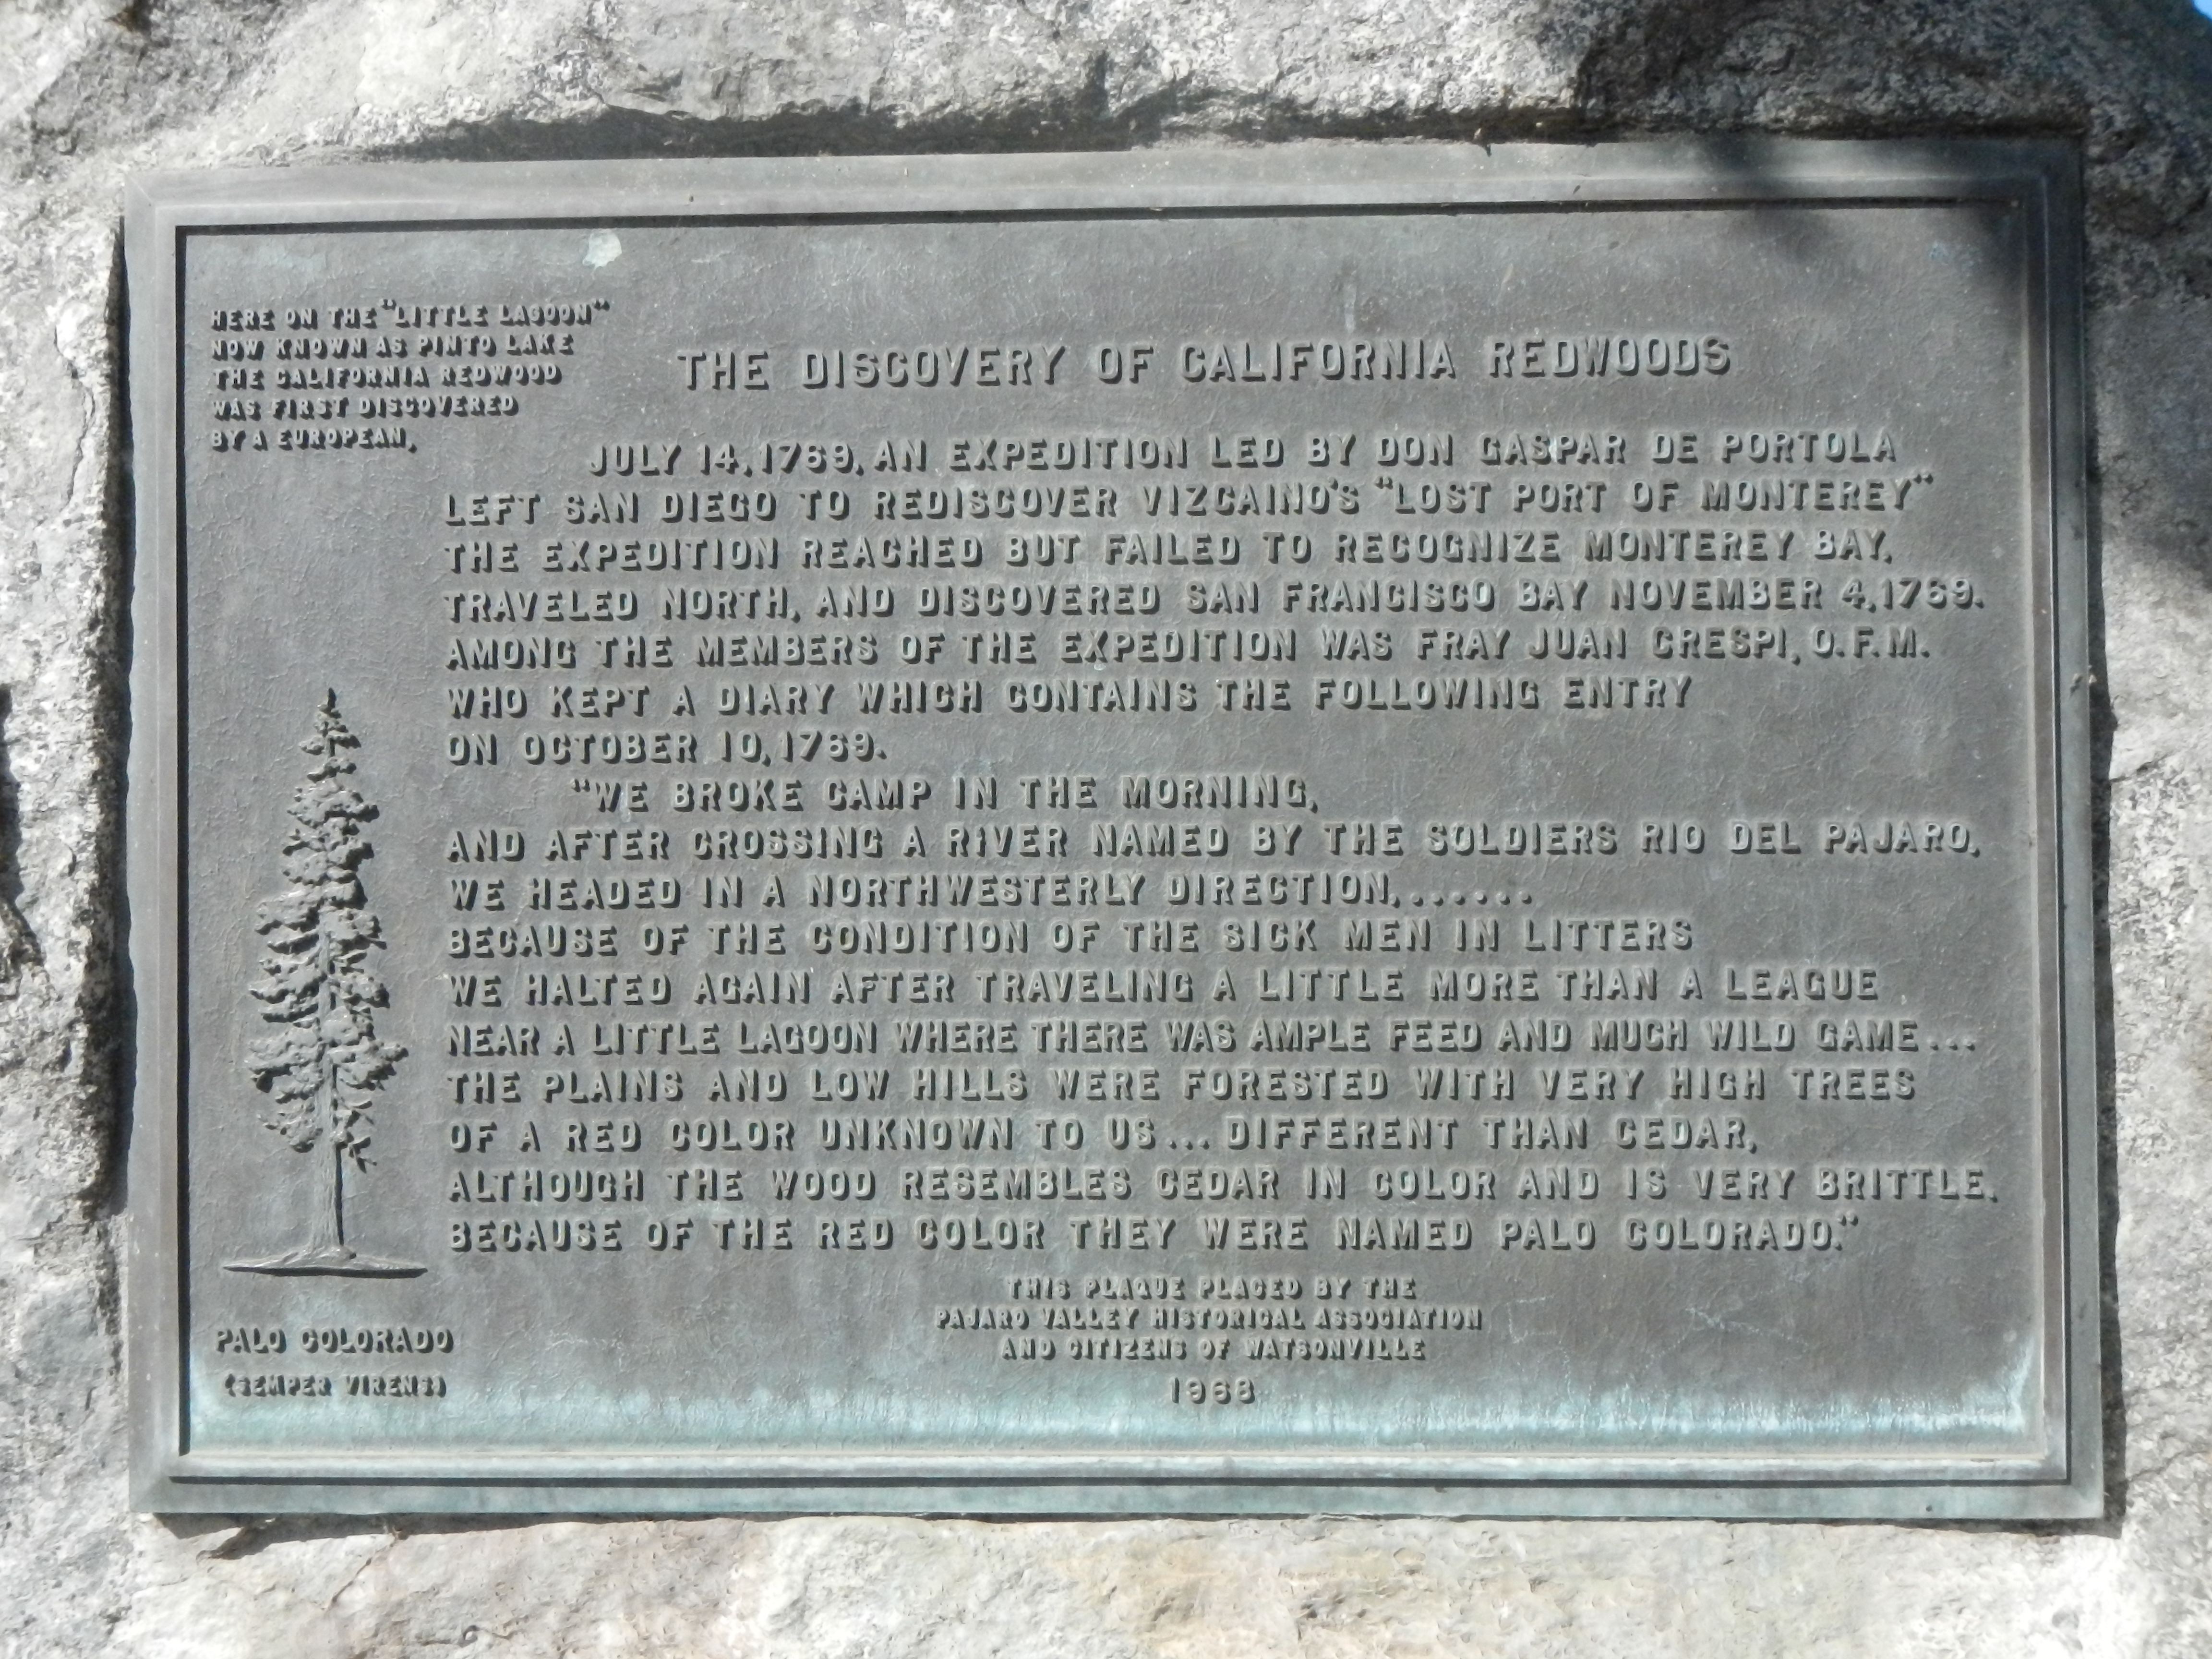 The Discovery of California Redwoods Marker